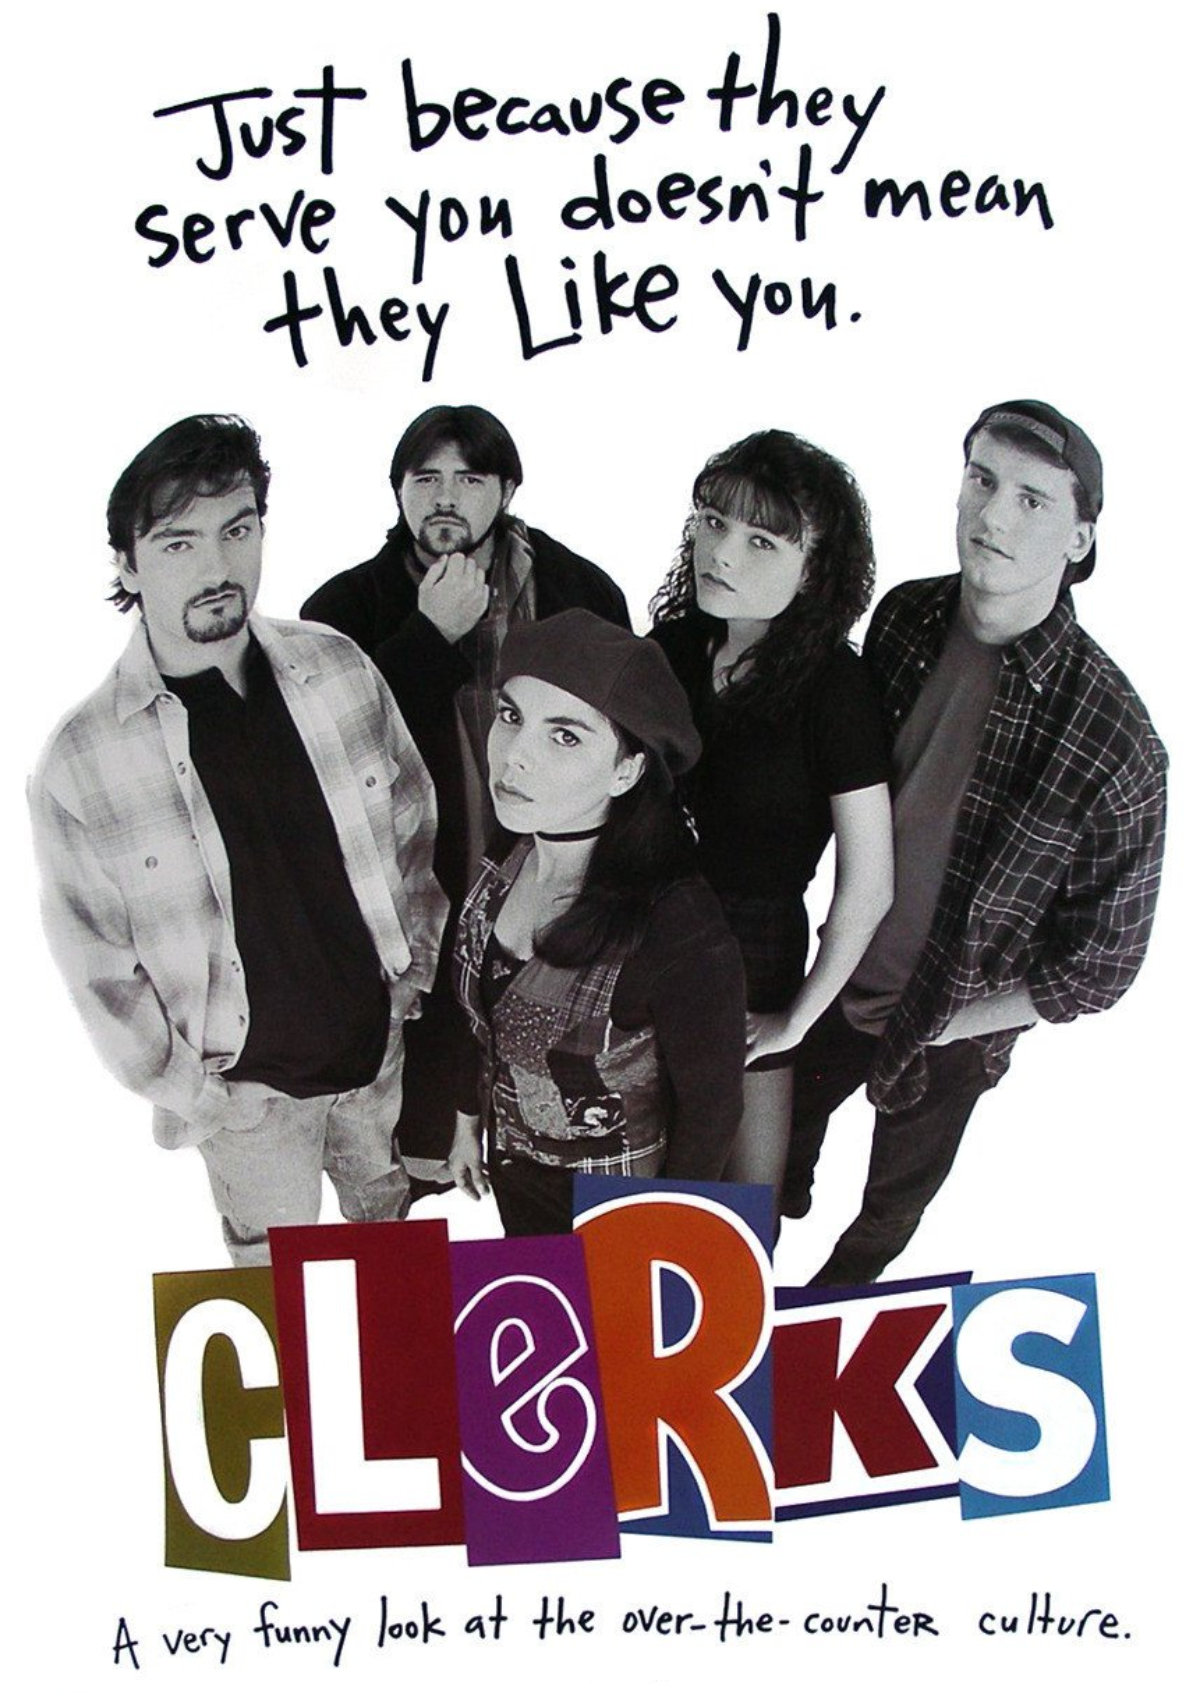 'Clerks' movie poster